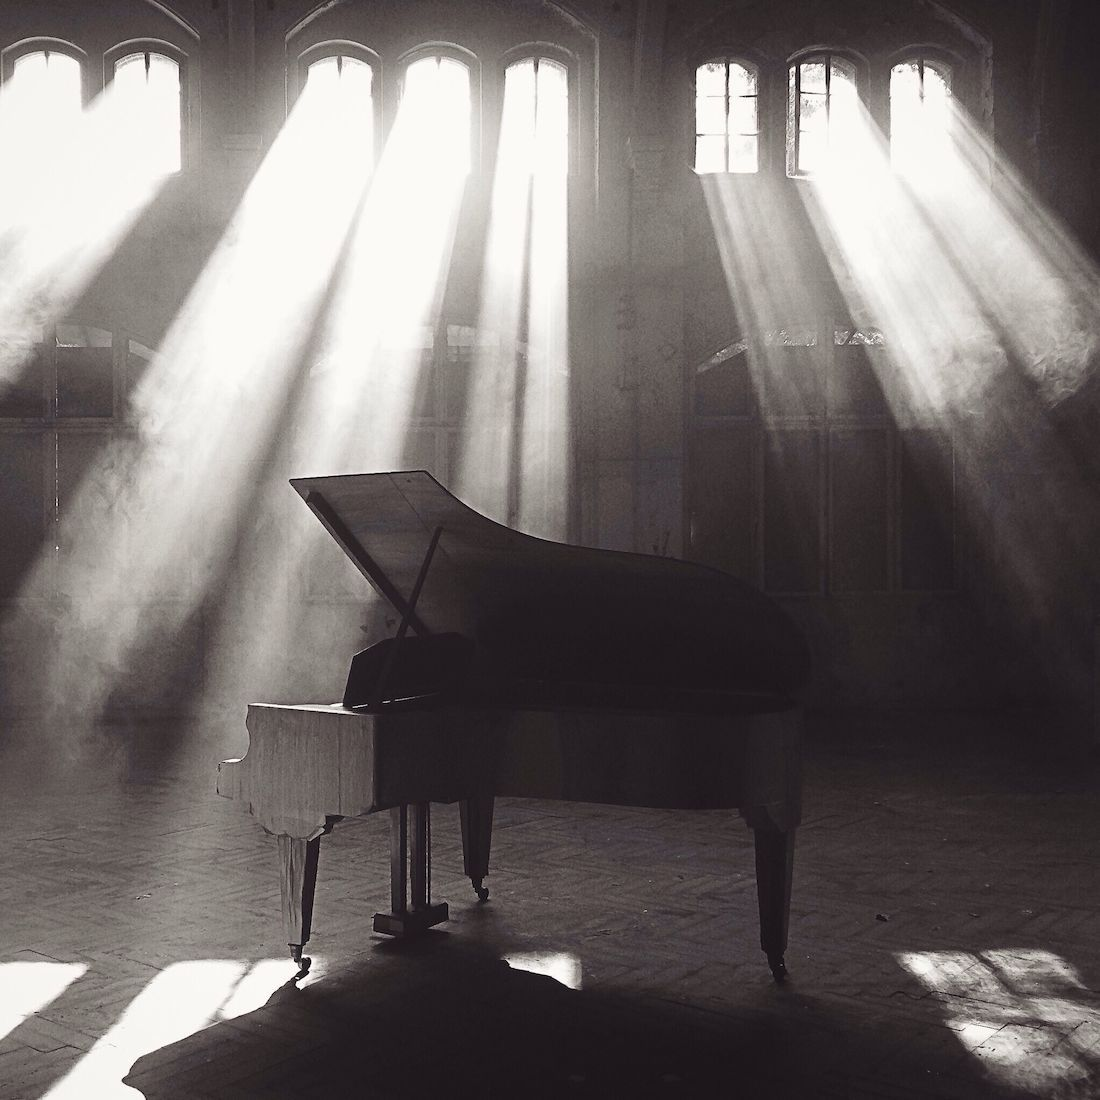 Sunlight beating on the piano